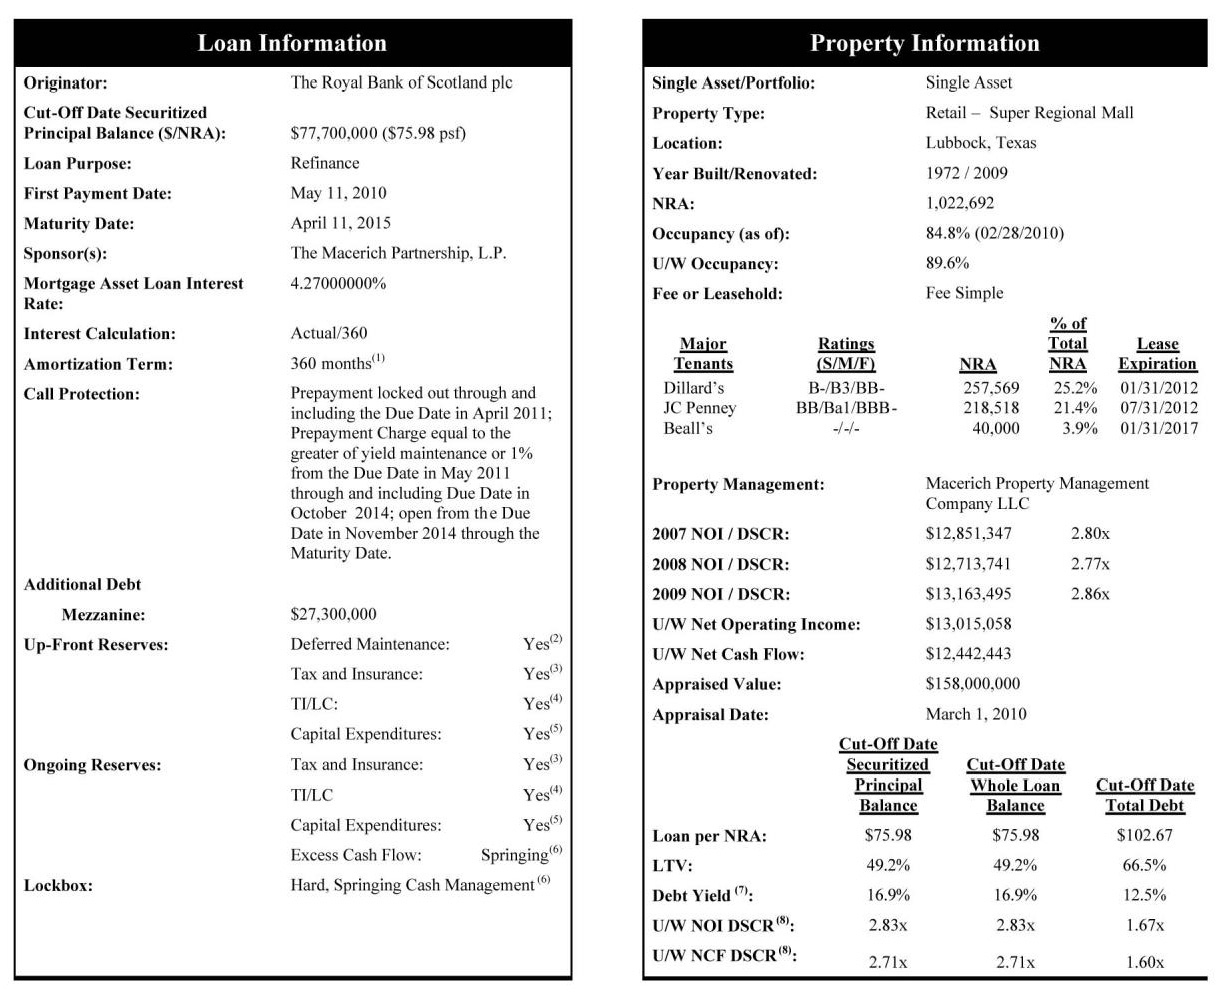 Yield Maintenance Spreadsheet For Sage Business Cases  The Return Of The Loan: Commercial Mortgage